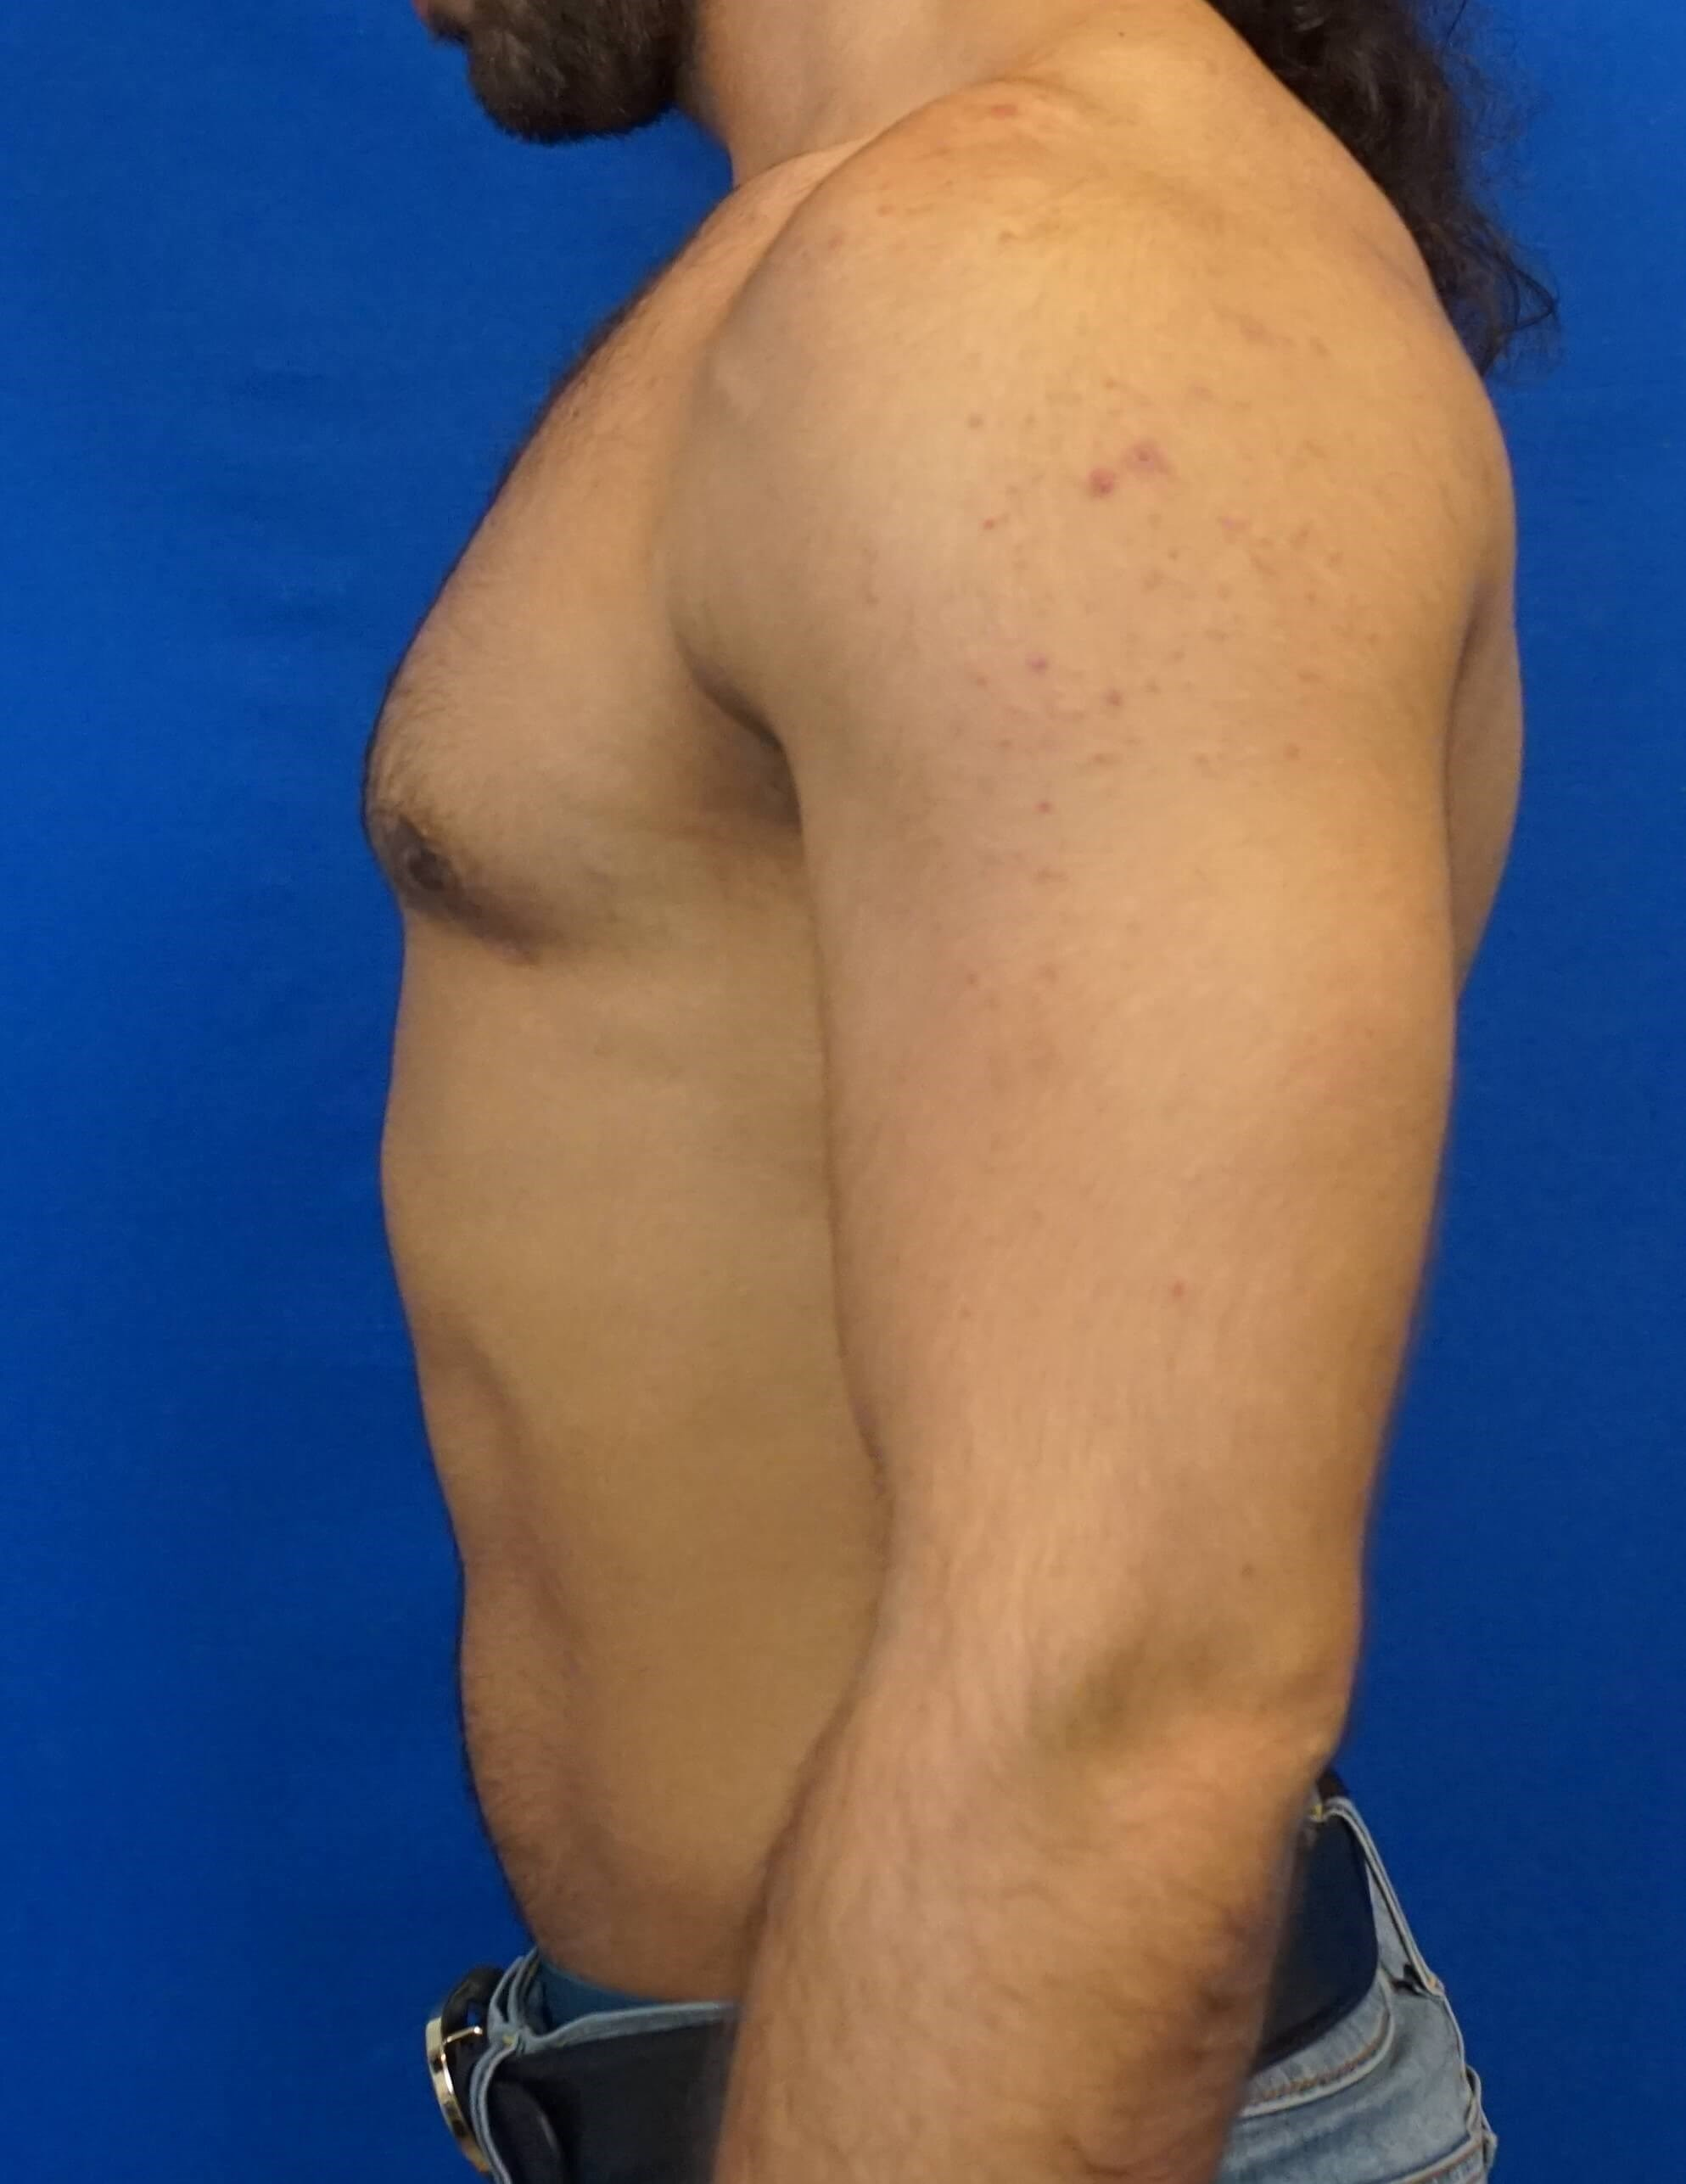 Gynecomastia Surgeon Las Vegas After